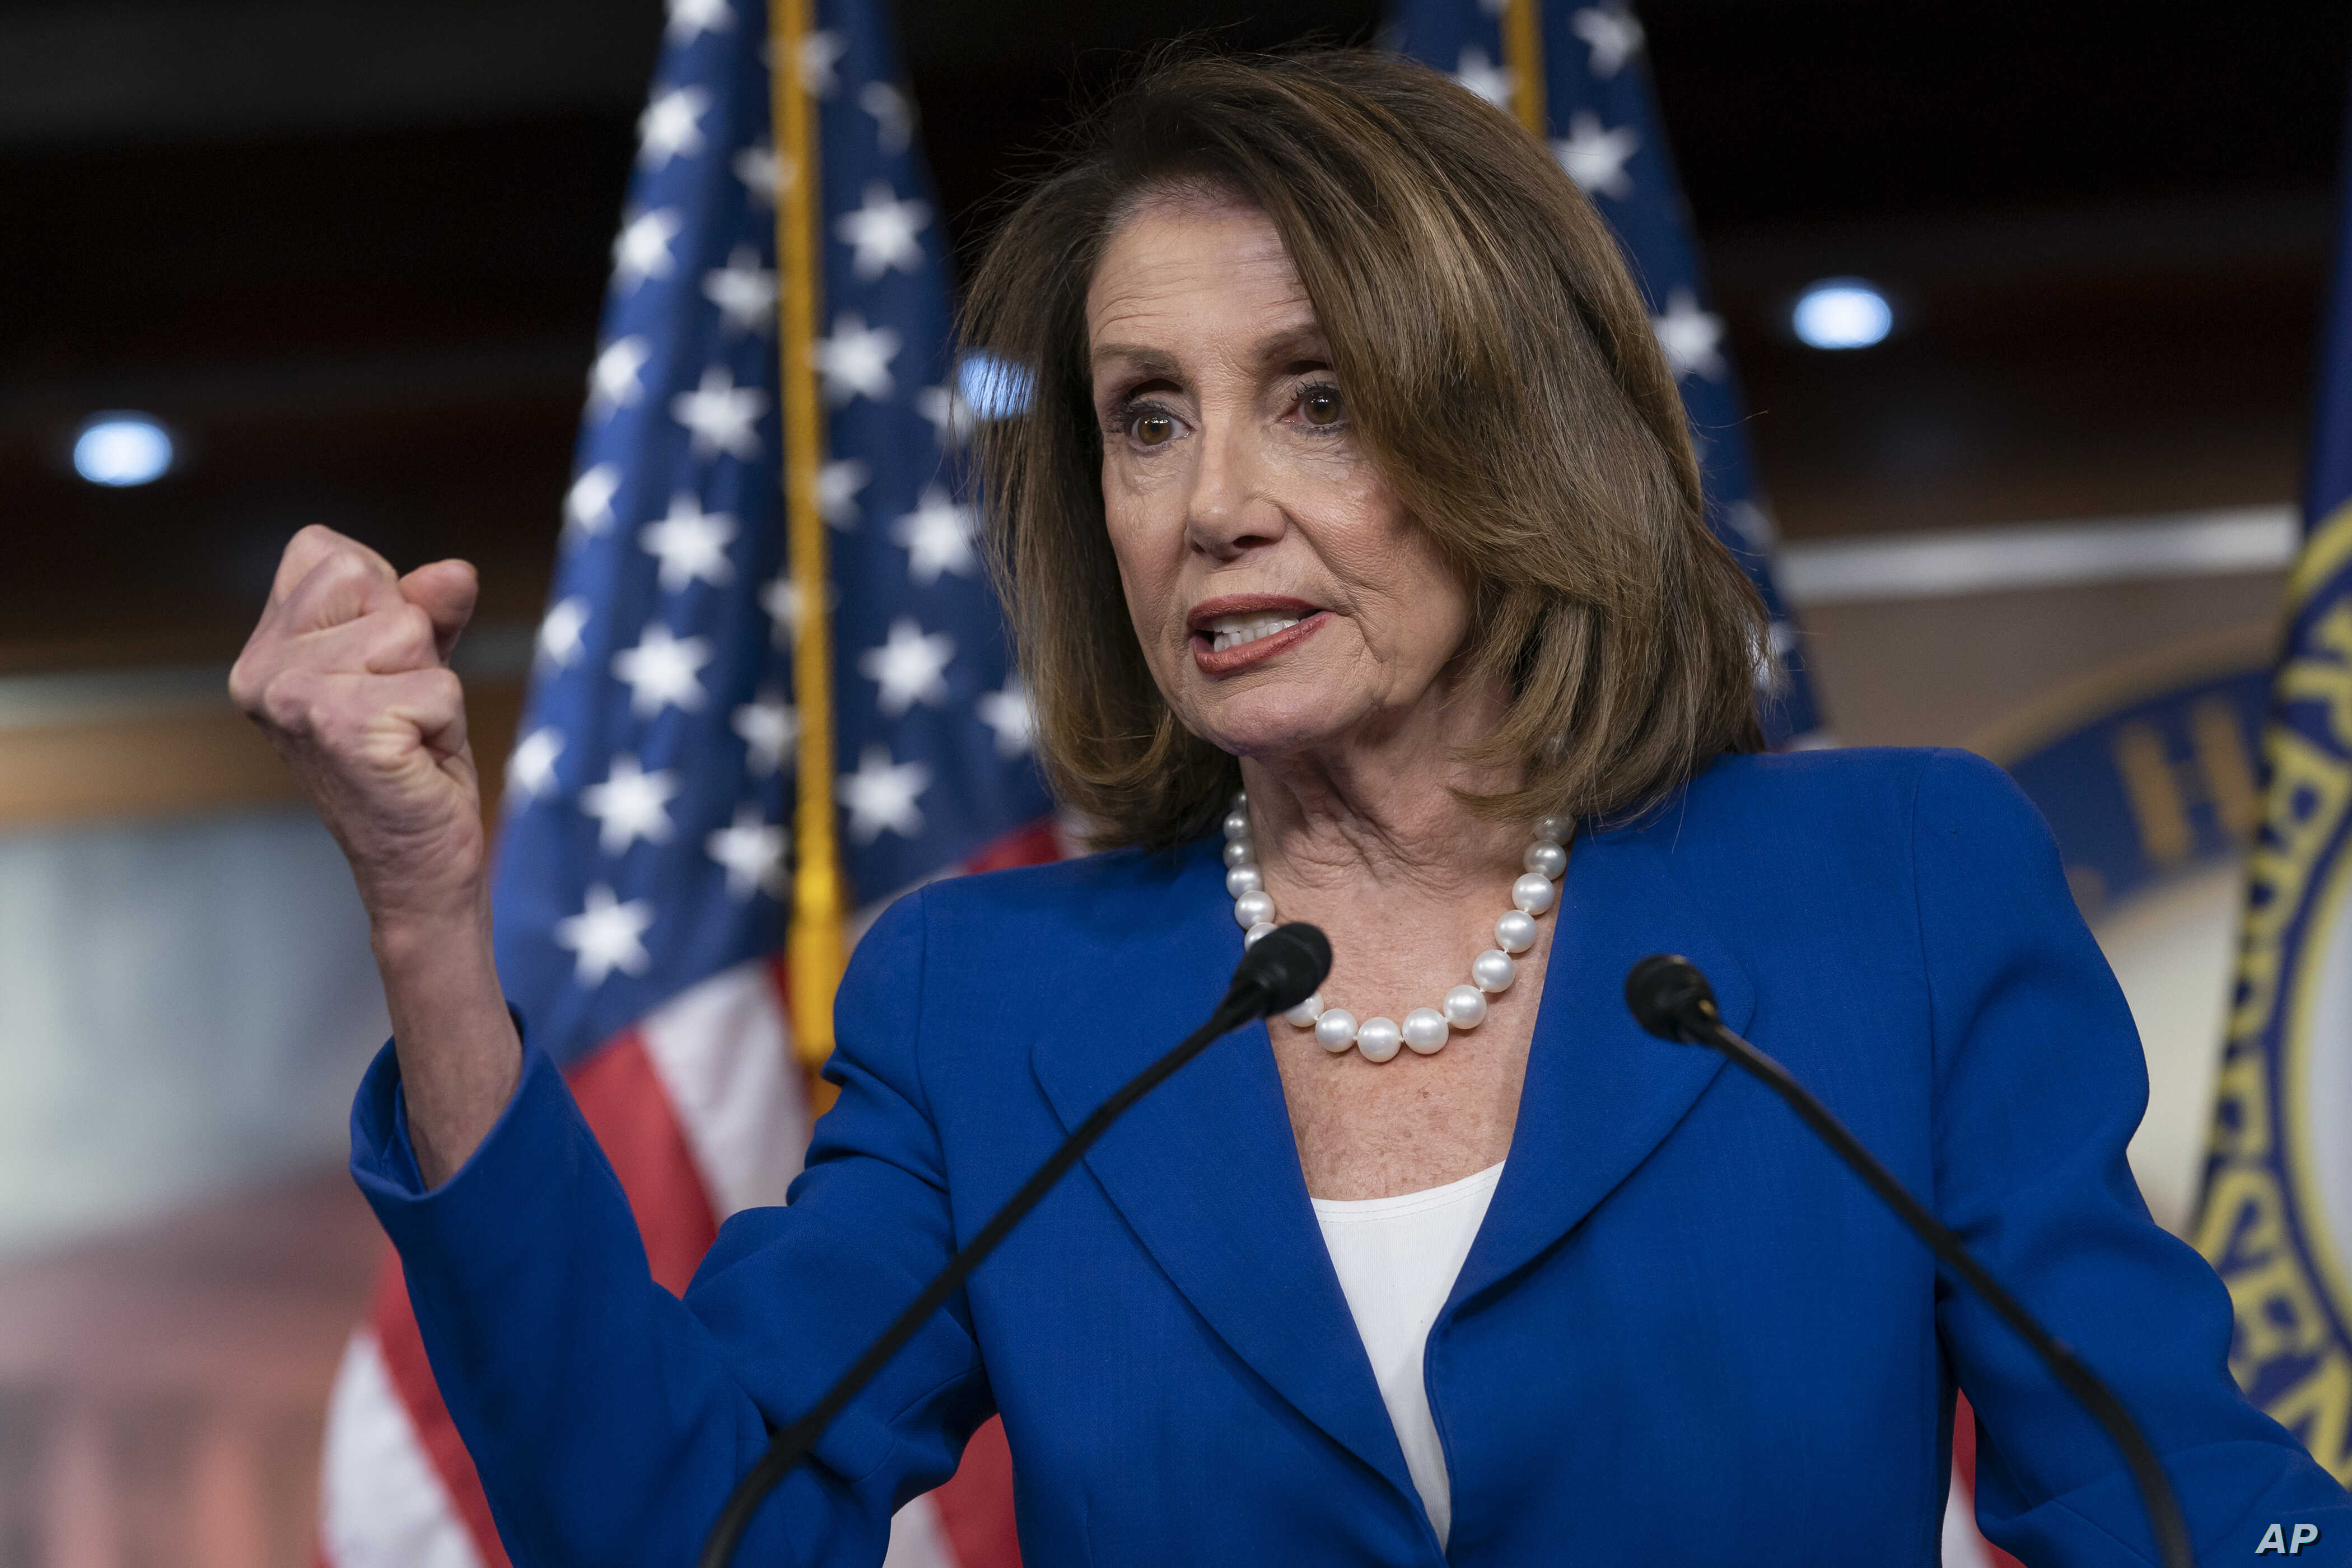 """House Speaker Nancy Pelosi heaps scorn on Attorney General William Barr, saying his letter about special counsel Robert Mueller's report was """"condescending,"""" after Barr concluded there was no evidence that President Donald Trump's campaign """"conspired..."""